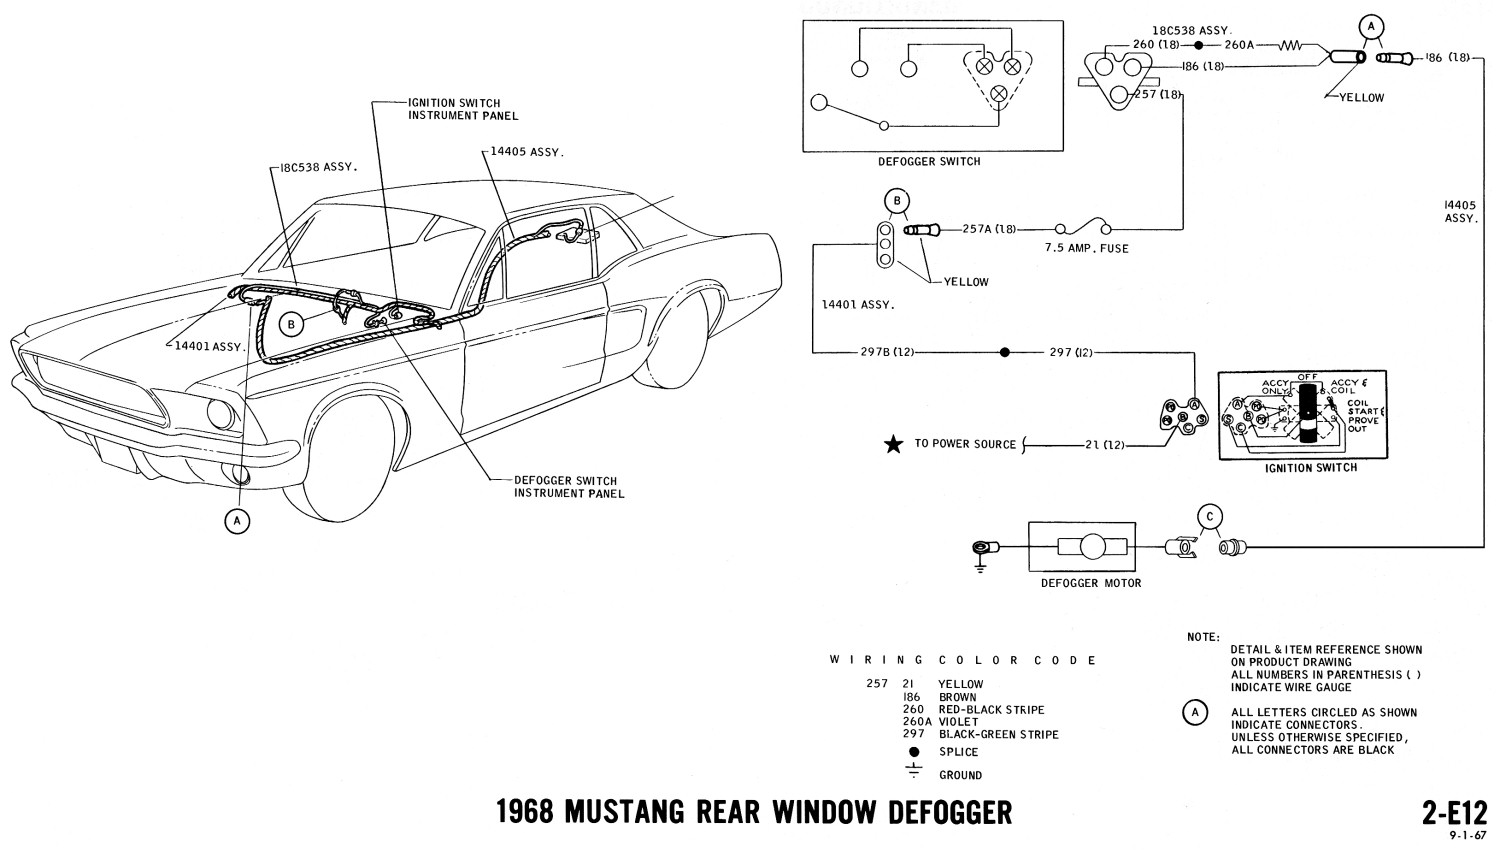 1968 cadillac deville wiring diagram    1968    mustang    wiring    diagrams evolving software     1968    mustang    wiring    diagrams evolving software